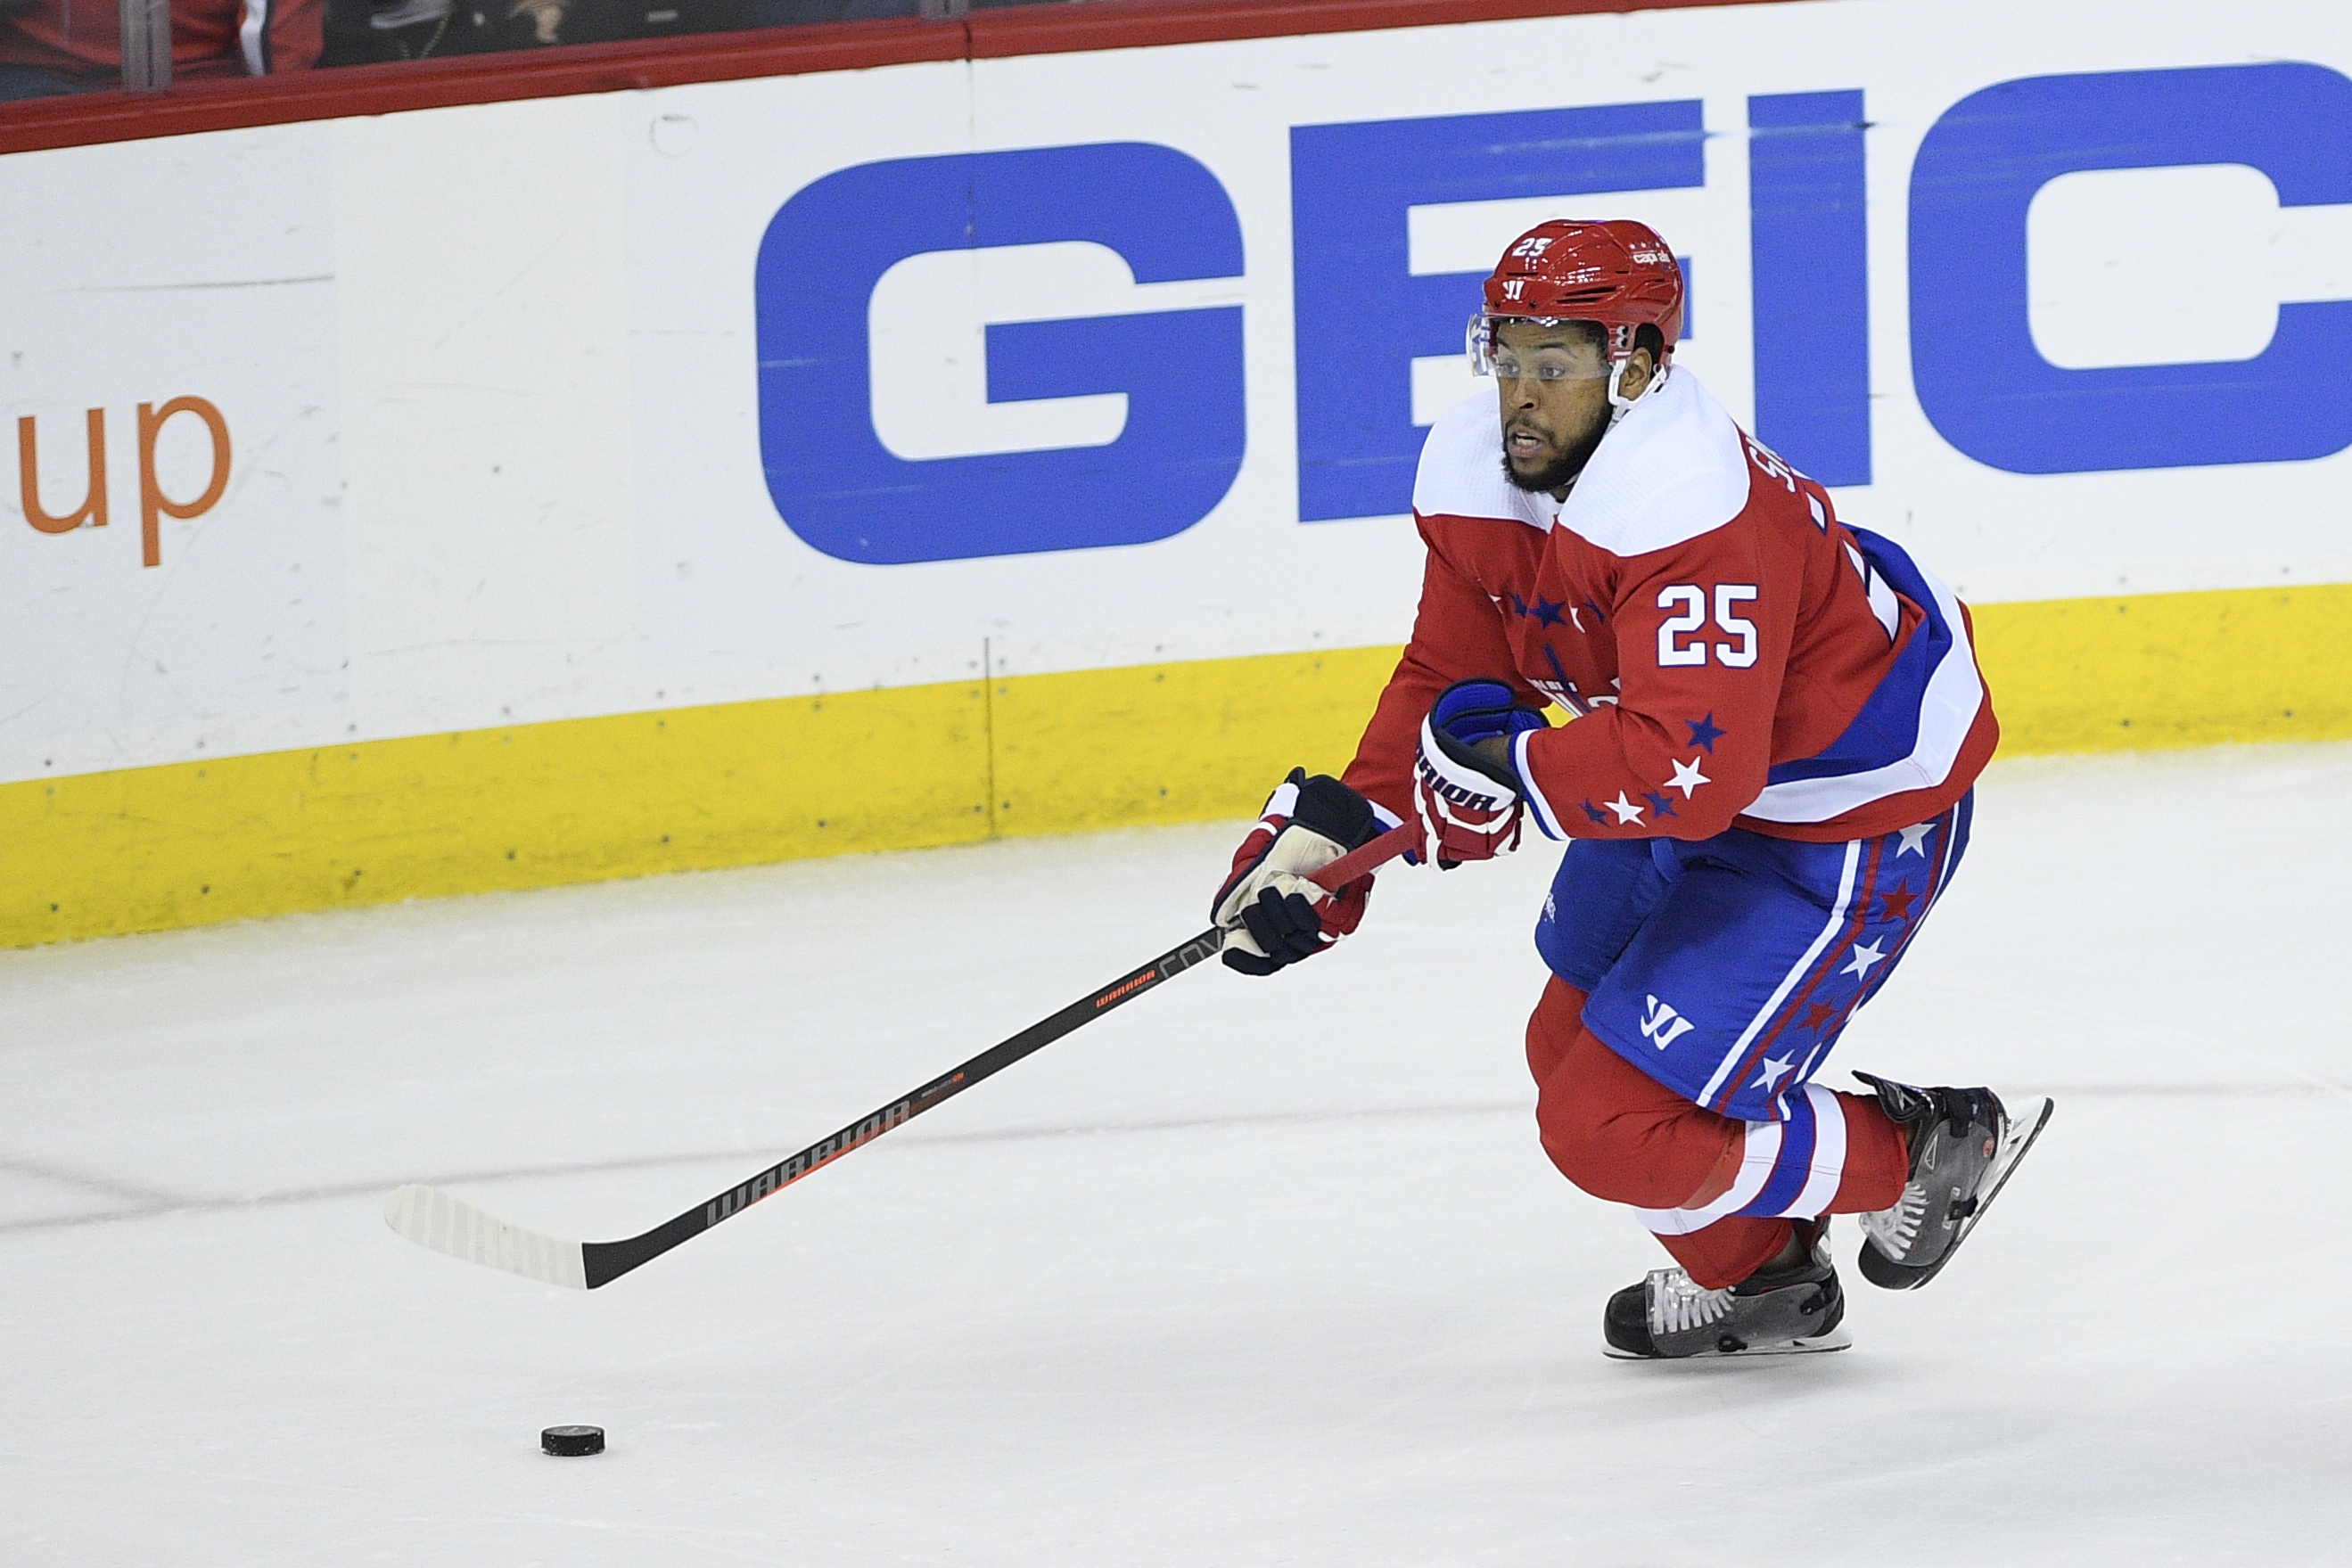 Devante Smith-Pelly waived by Capitals in surprise move - Washington Times 7b81f2f0fcb6